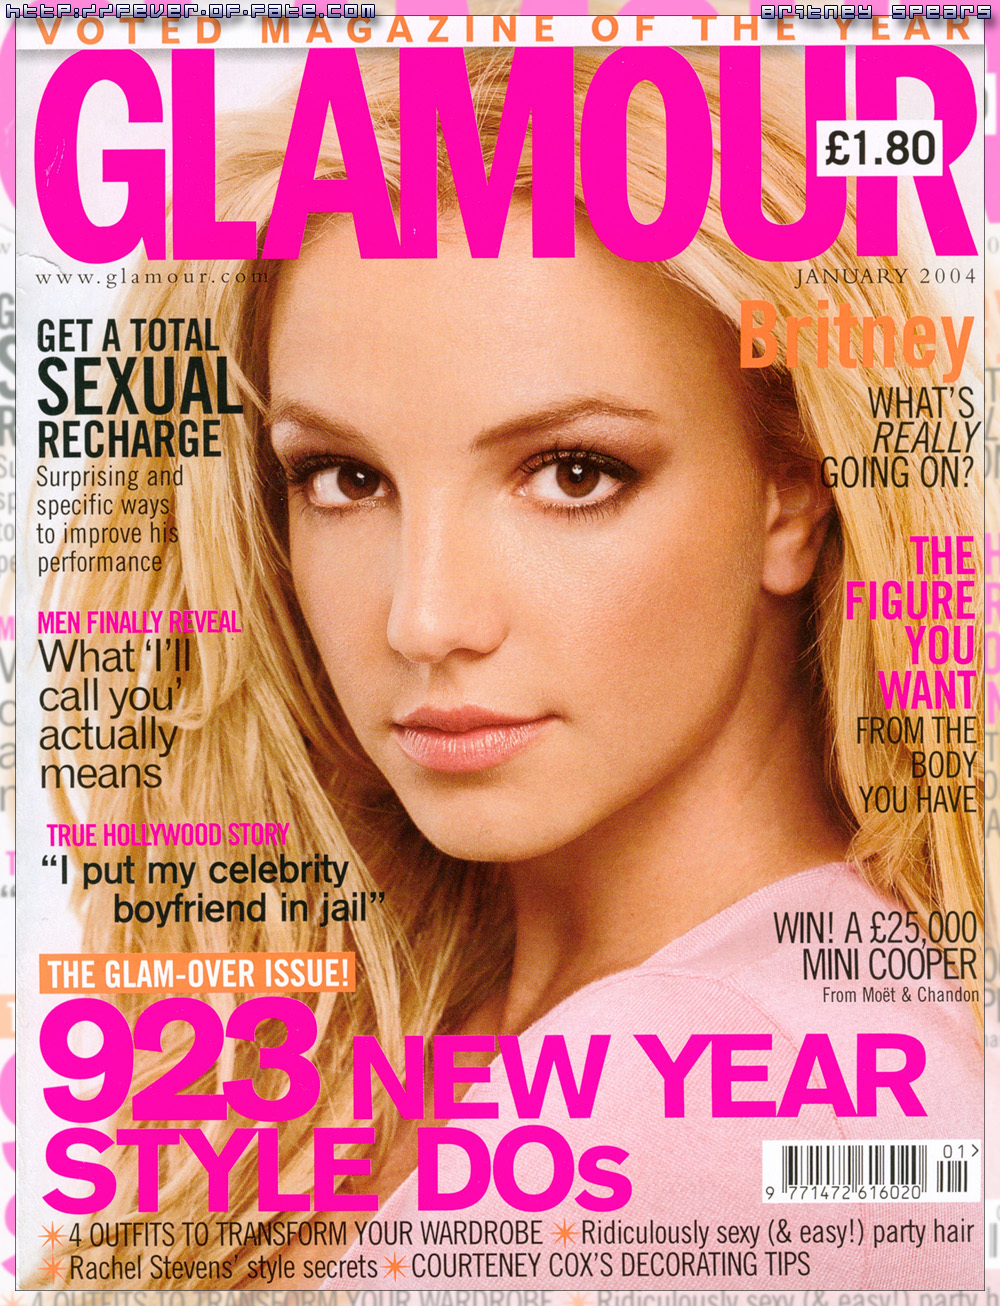 Http Www Fanpop Com Clubs Britney Spears Images 1580937 Title Britney Magazine Scans Photo